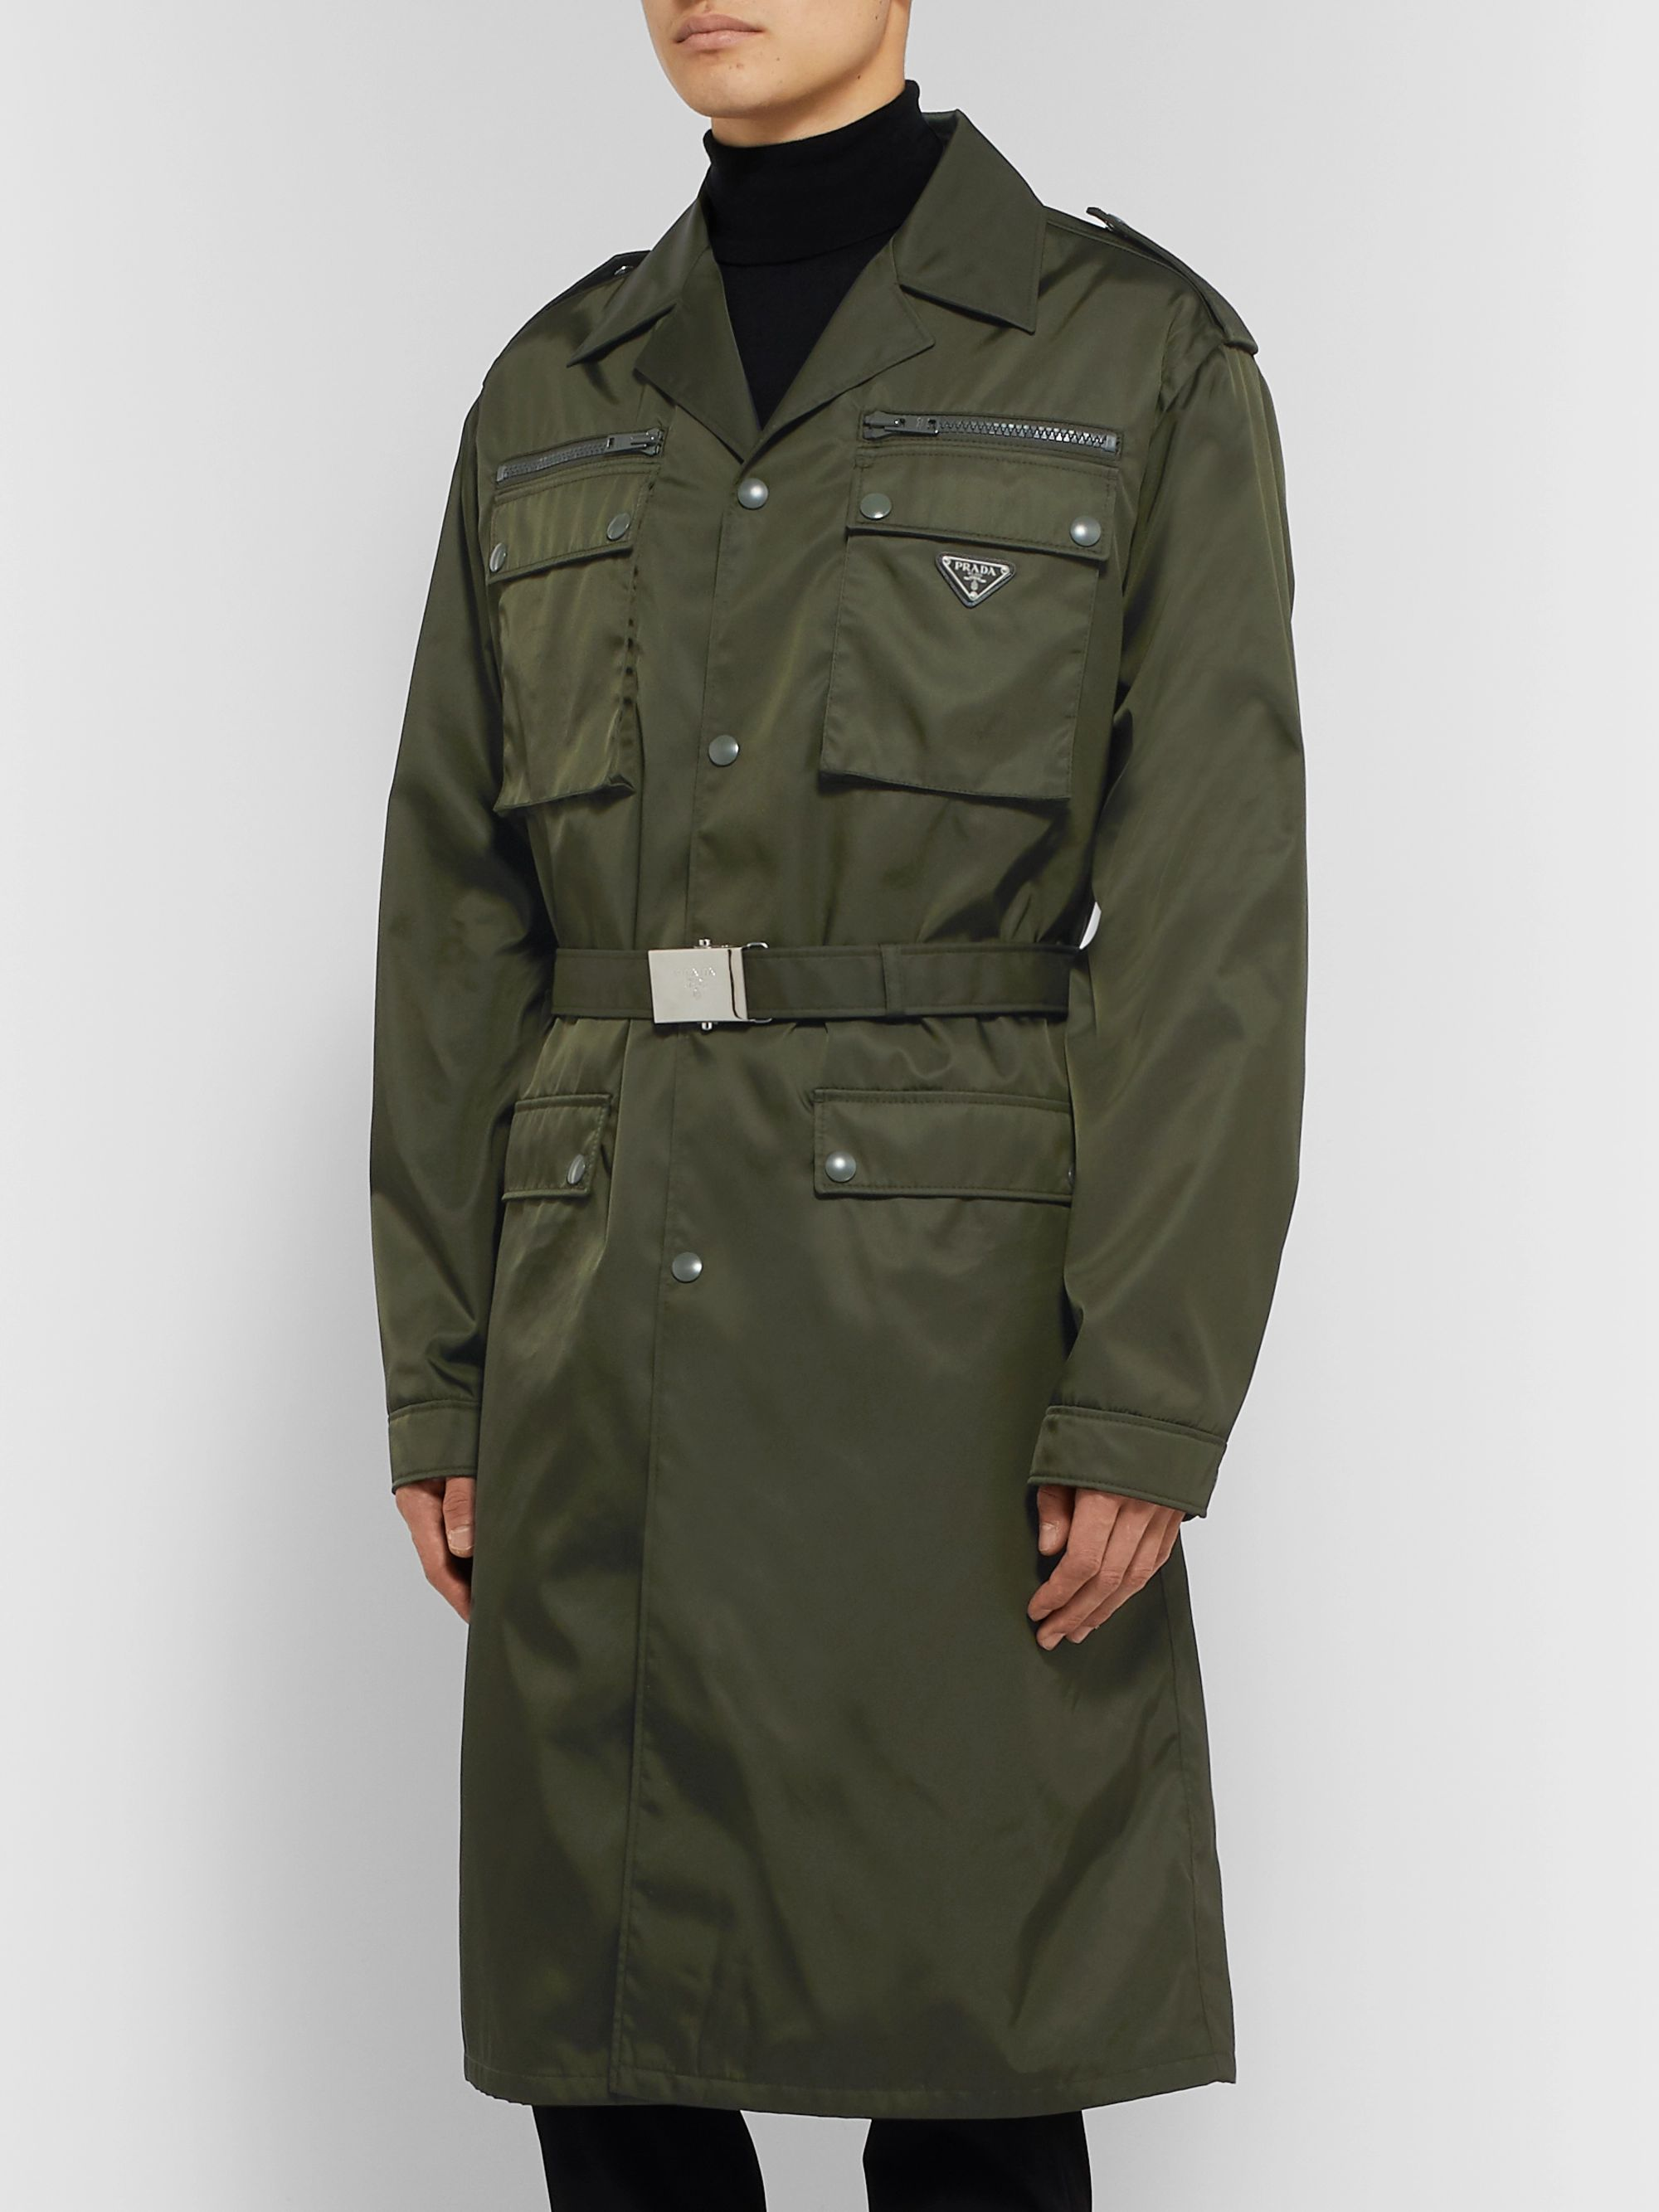 Prada Belted Nylon-Gabardine Trench Coat